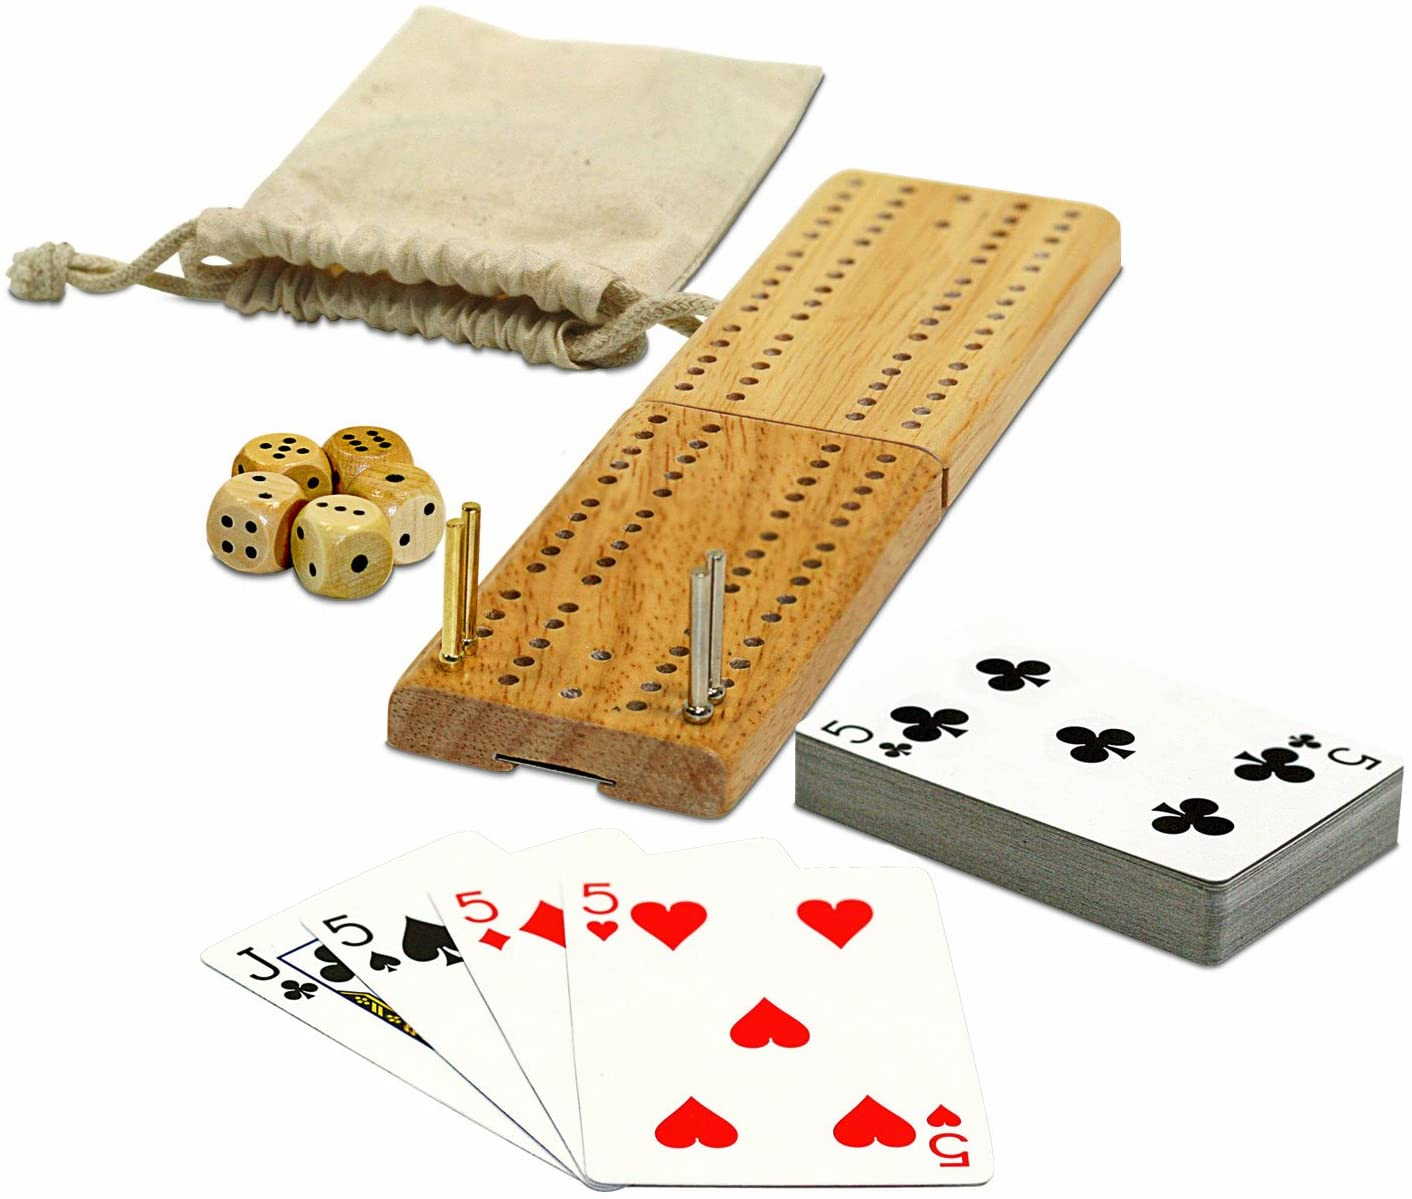 WE Games Cribbage and More Travel Game Pack